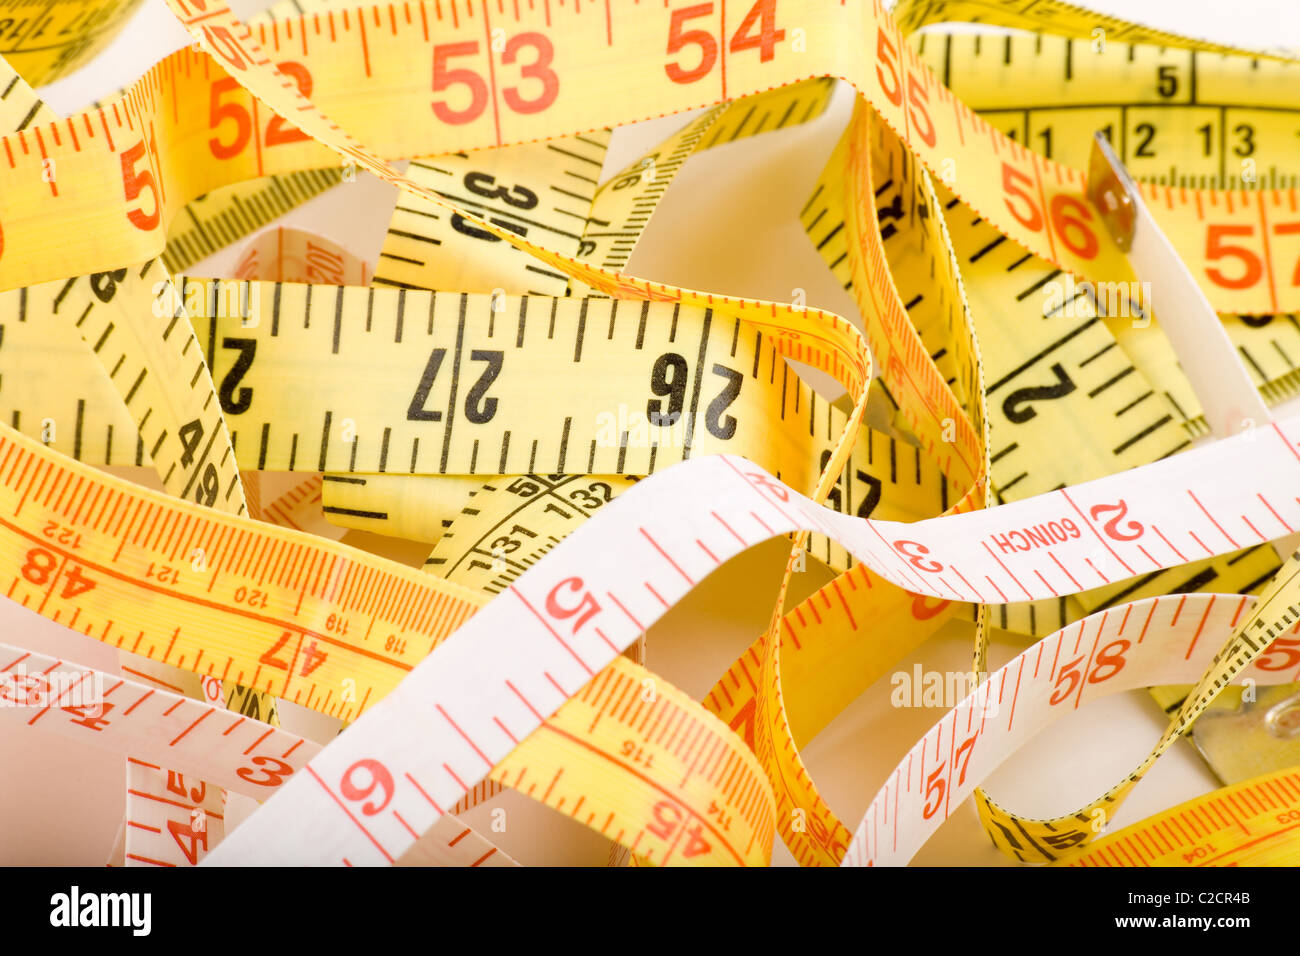 Tape Measure with white background - Stock Image